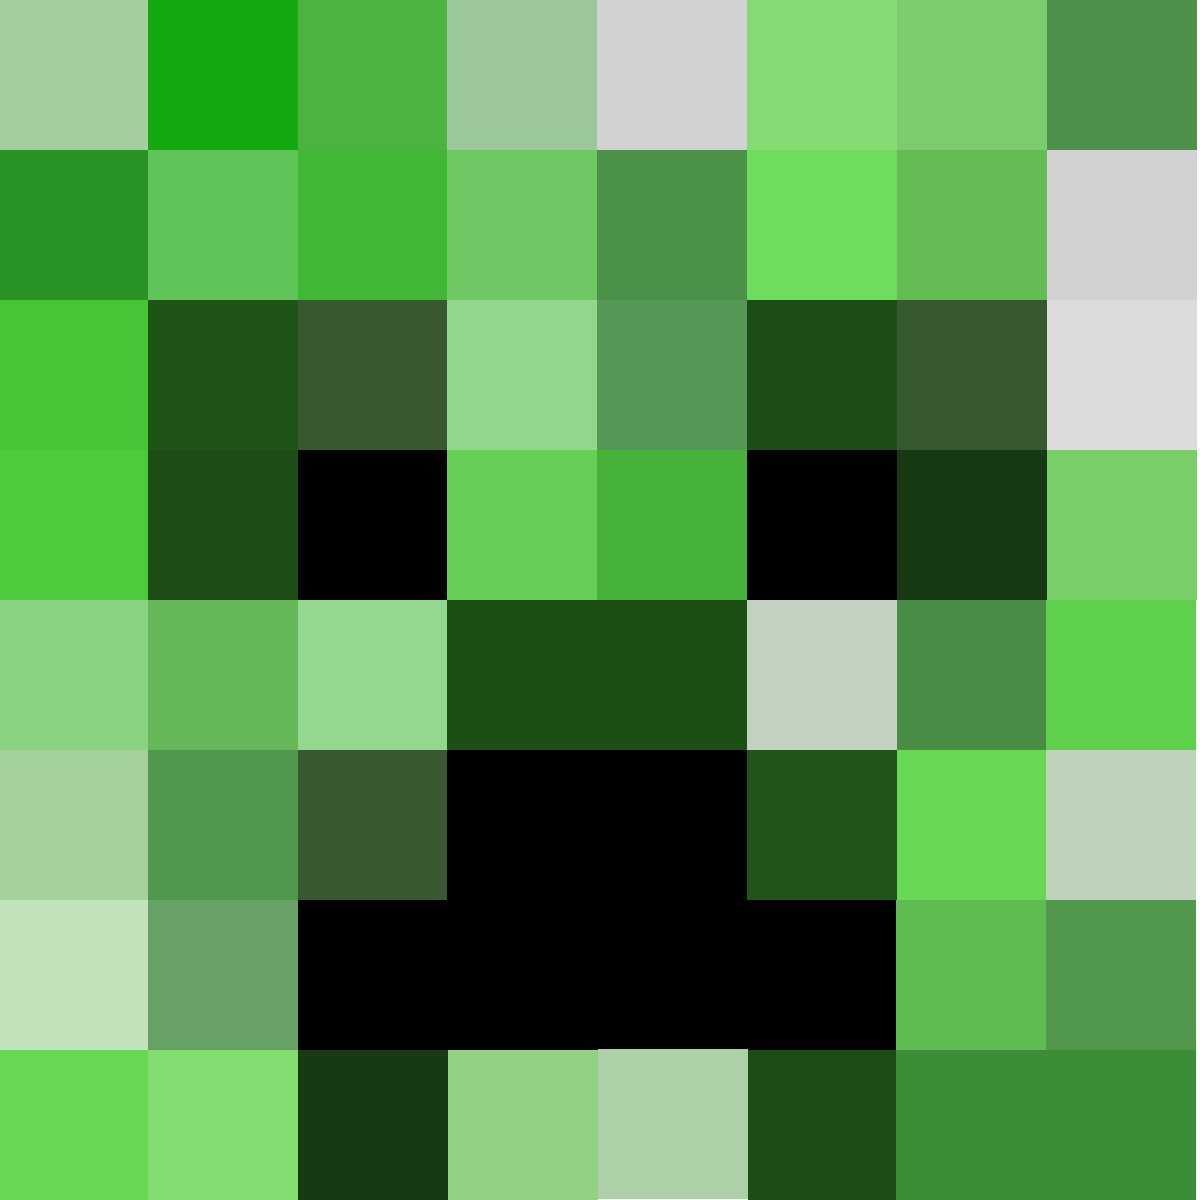 Minecraft Characters Faces Closed Defishensee Gfx Avatars Banners Youtube